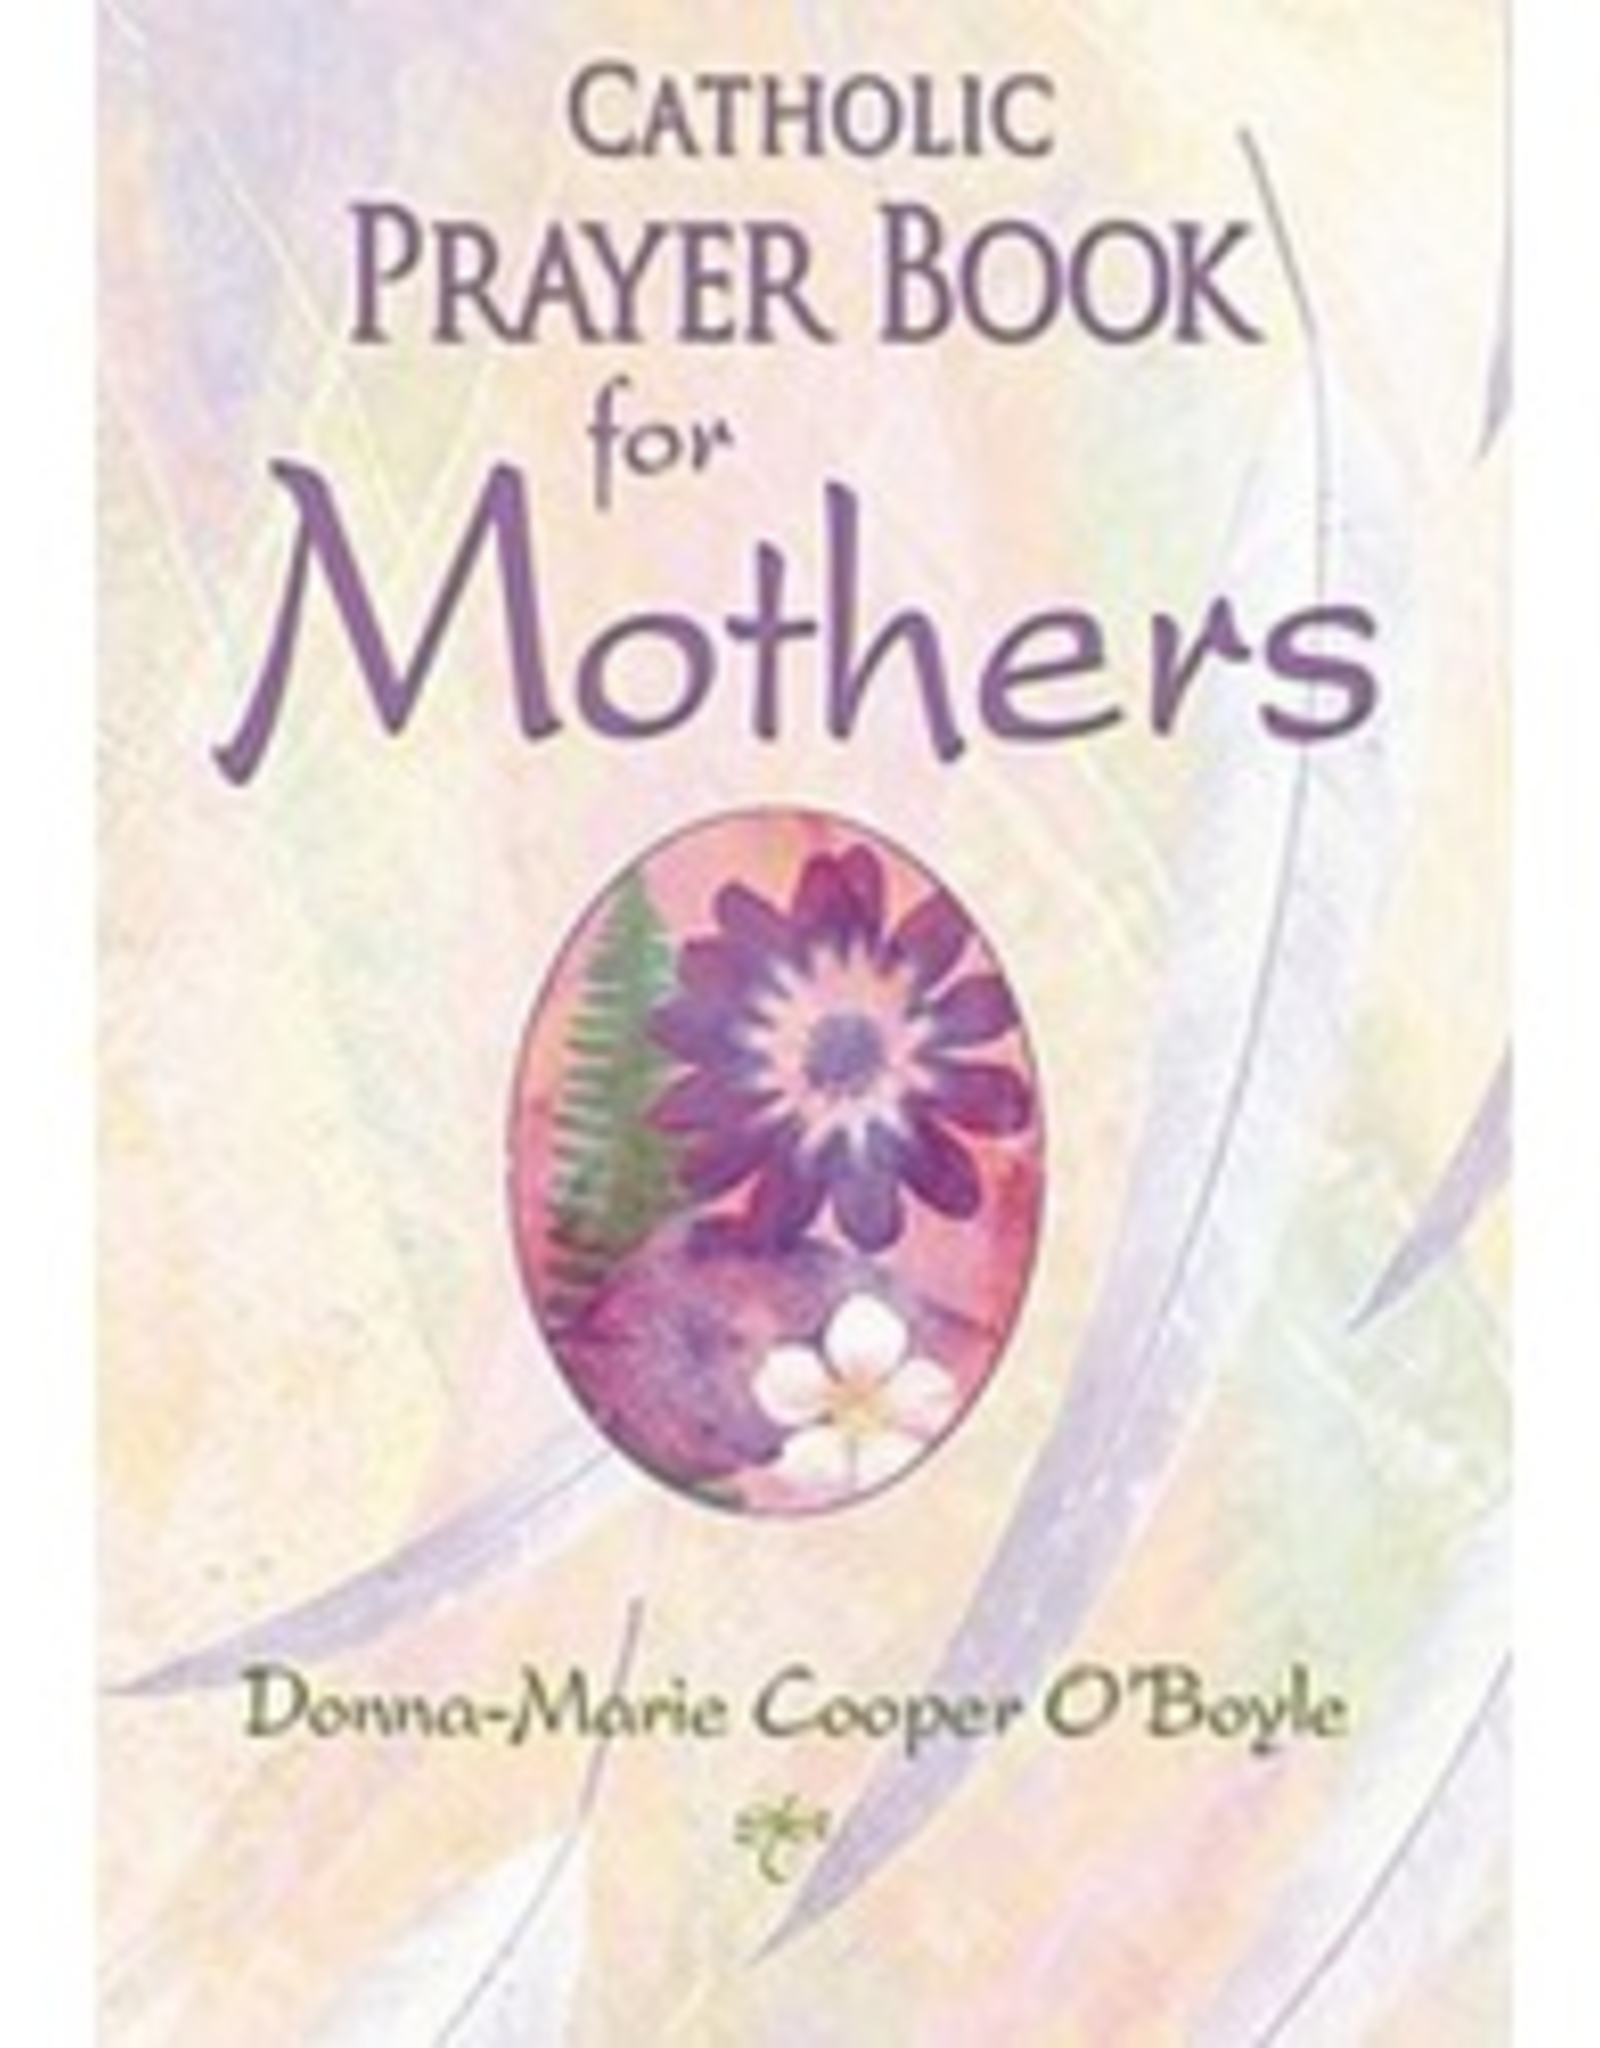 Our Sunday Visitor Catholic Prayer Book for Mothers, by Donna- Marie Cooper O'Boyle